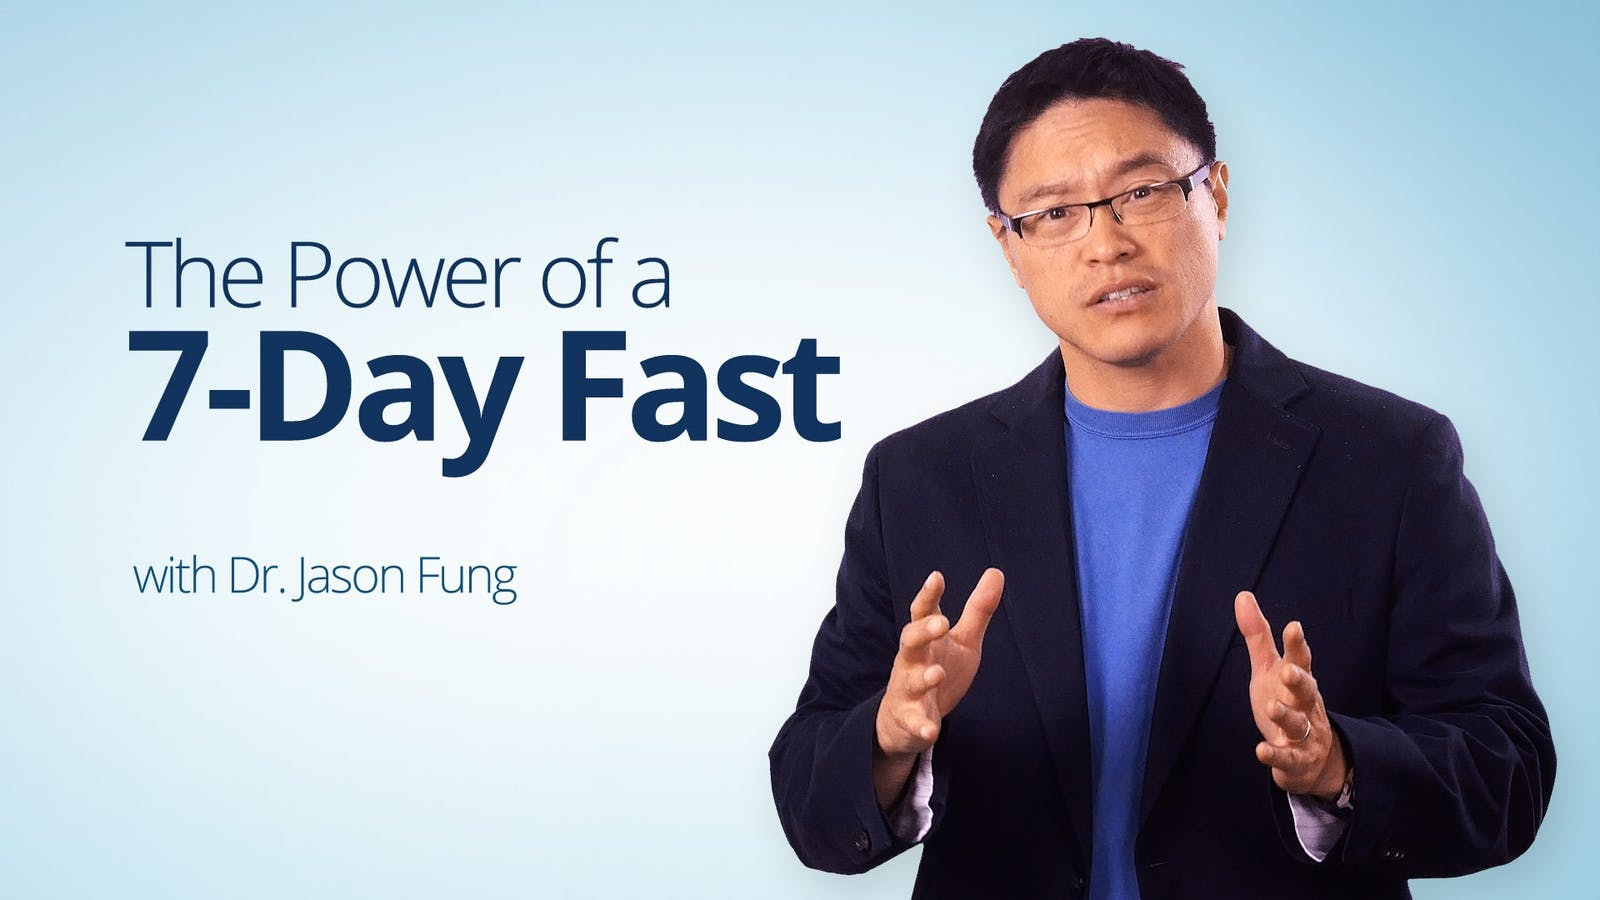 The power of a 7-day fast